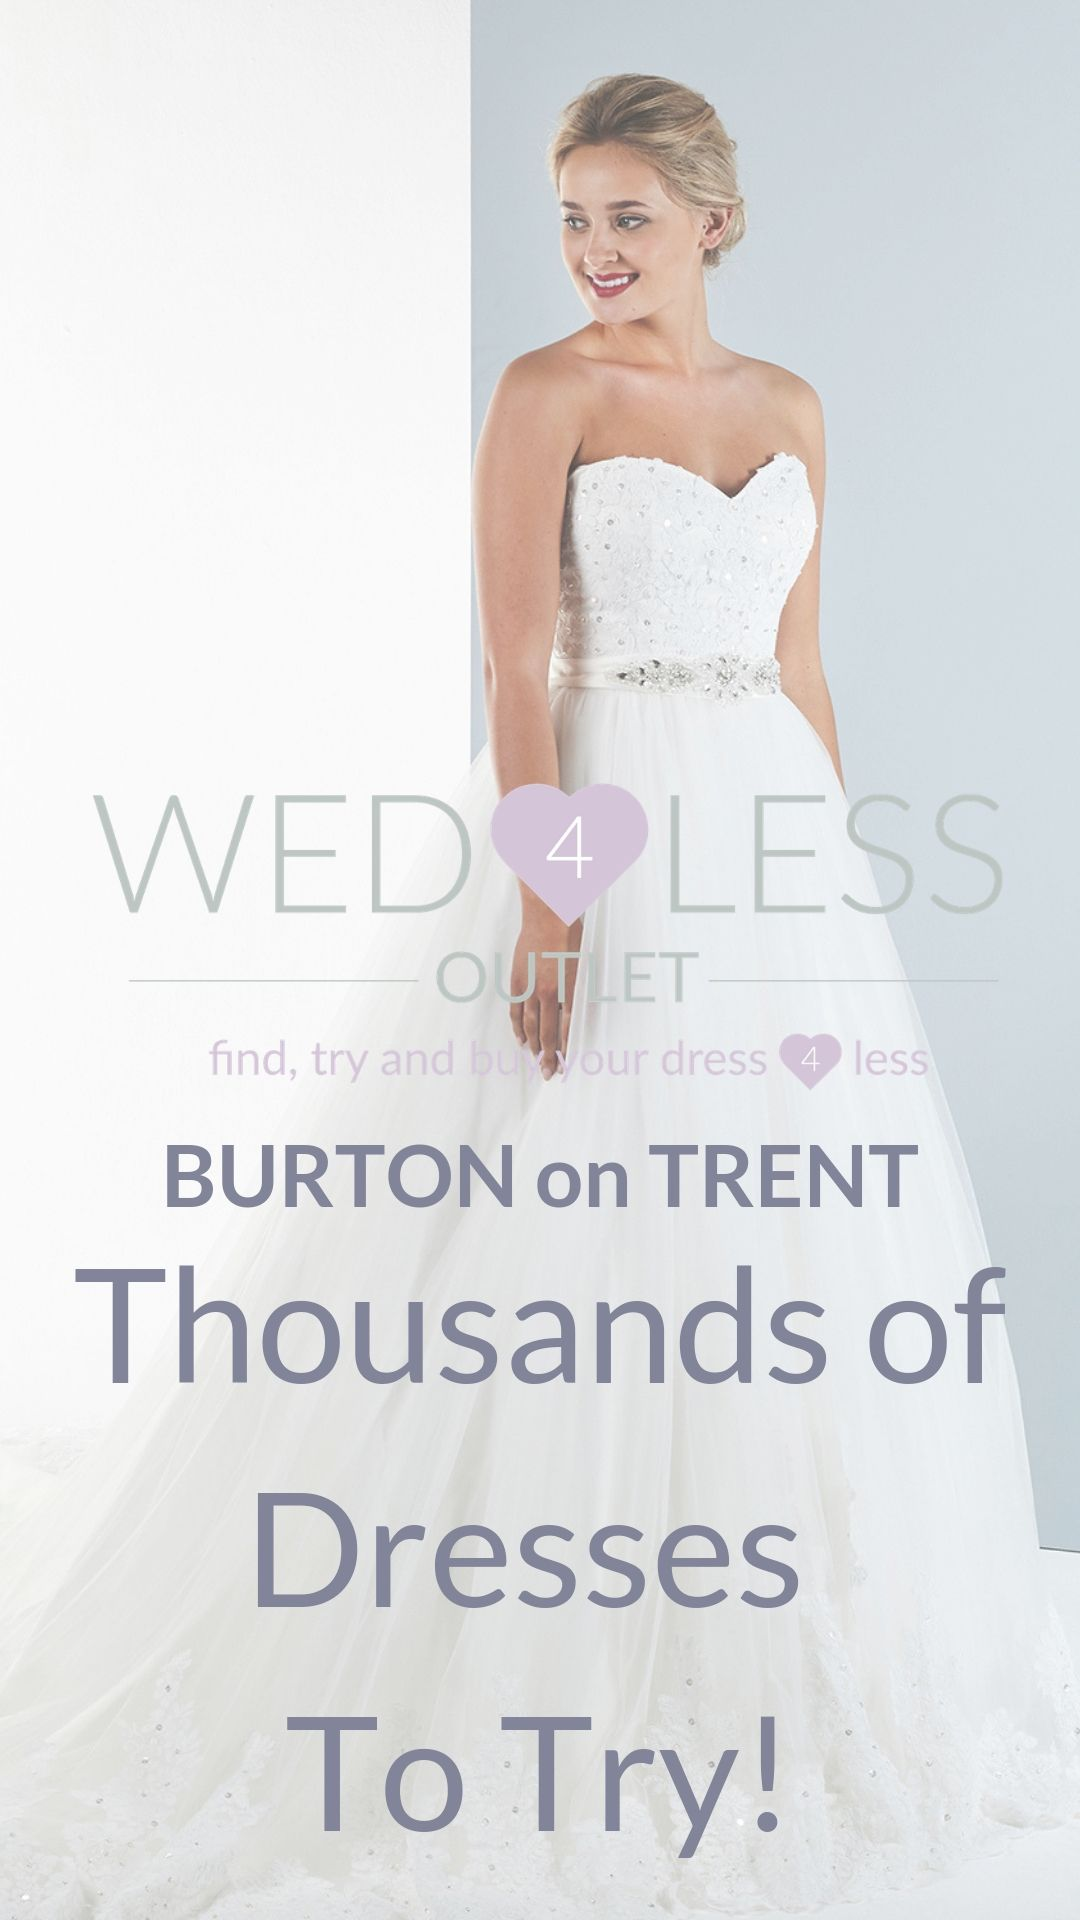 Wedding Dress Outlet Burton Upon Trent Wed4less Outlets